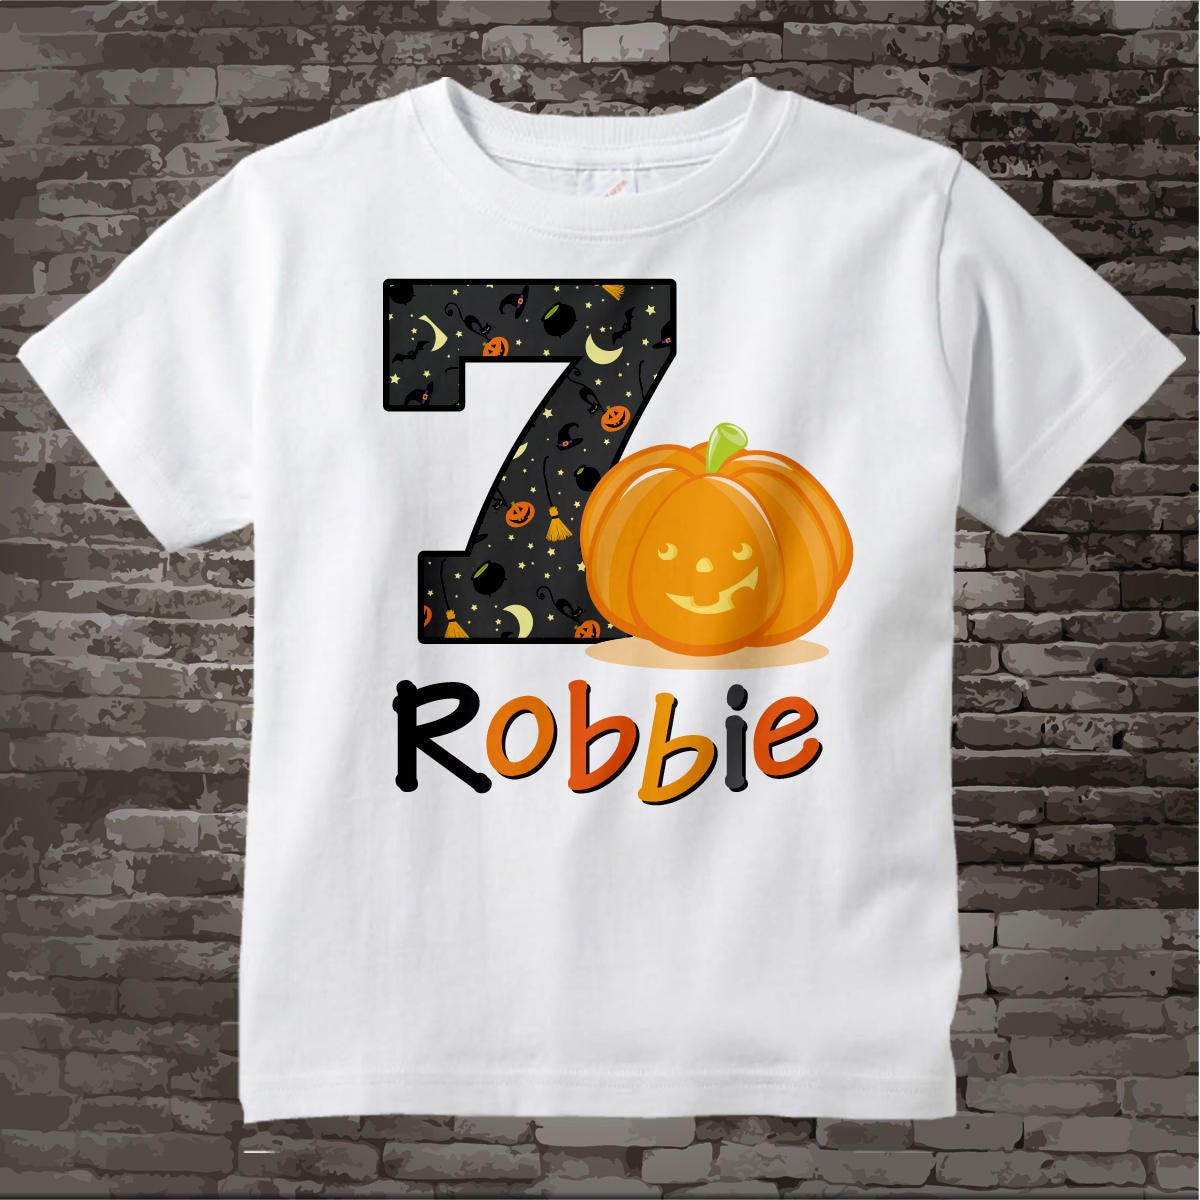 ed665d9d2 ... 7th Birthday Halloween Theme Tee Shirt, Short or Long Sleeve  10092017az. gallery photo gallery photo. $14.99. Spend $43 and ...